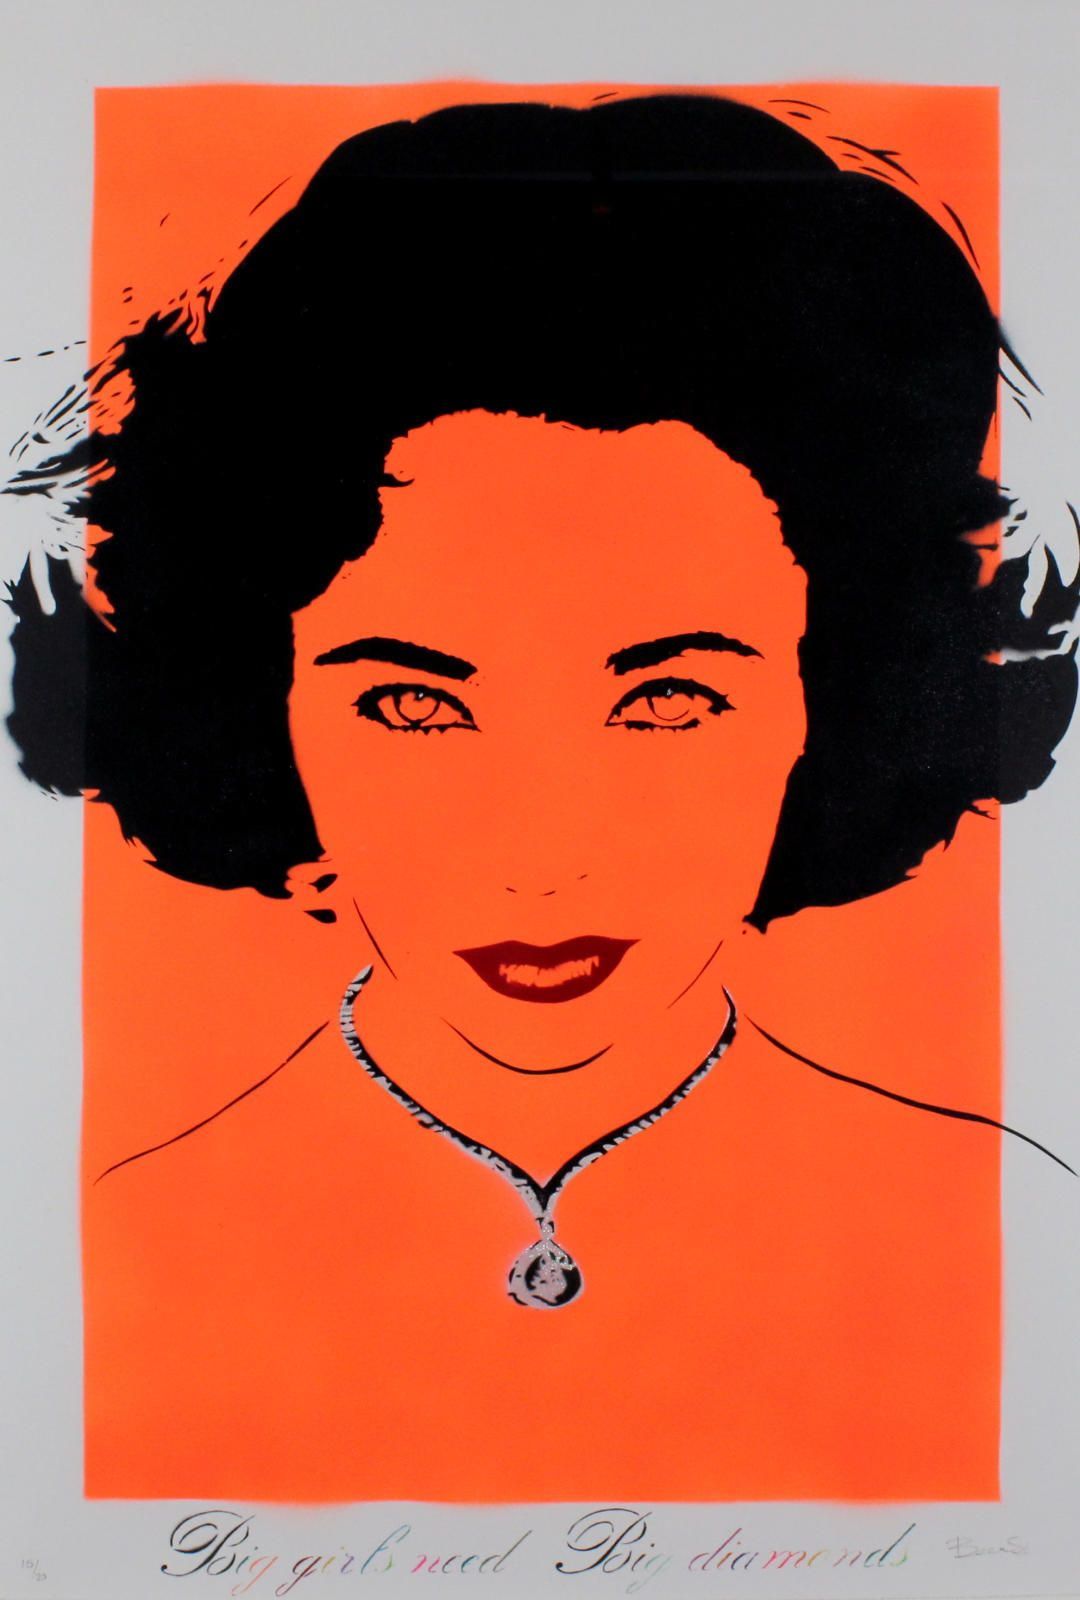 Big Girls Need Big Diamonds (Liz Taylor - Orange)